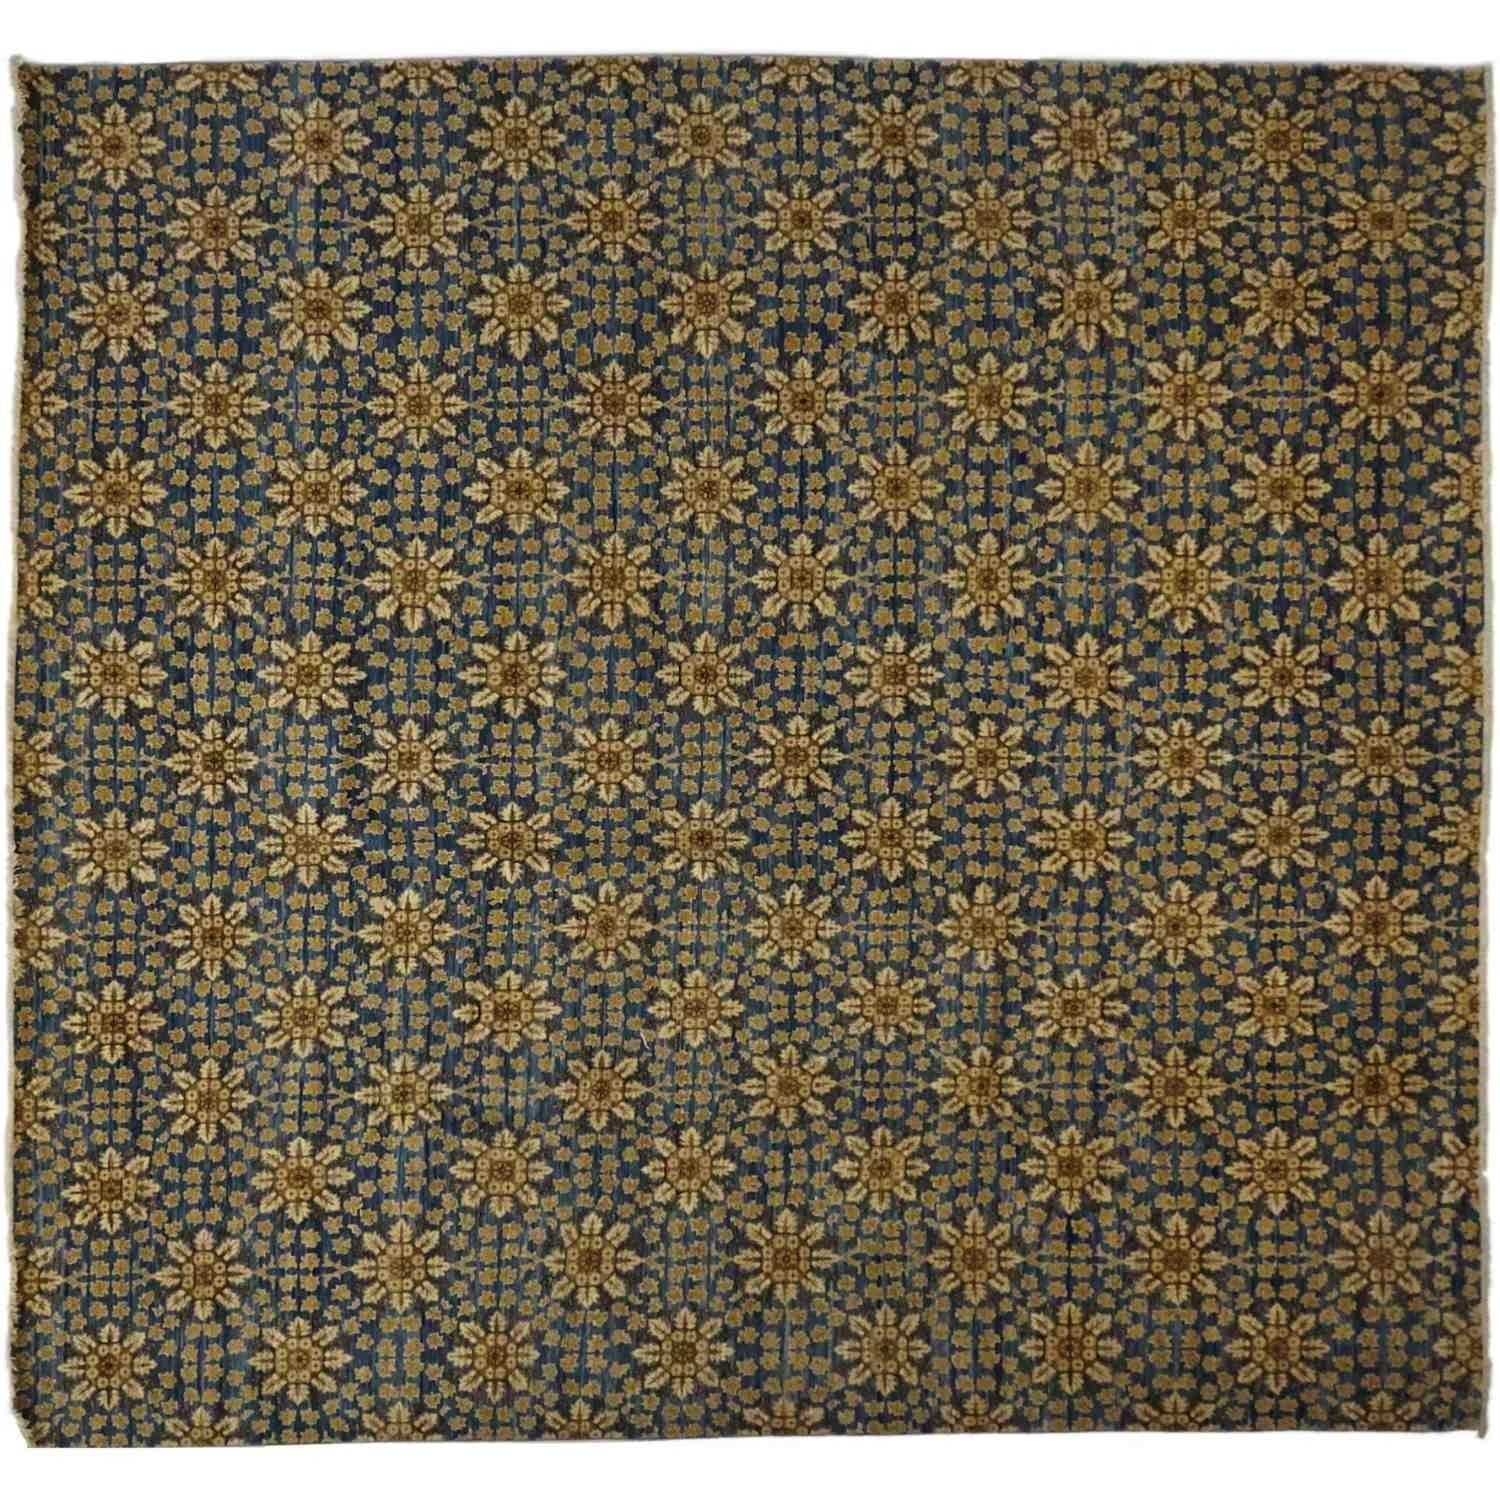 Eclectic Hand Knotted Area Rug 11 10 X 12 3 11 10 X 12